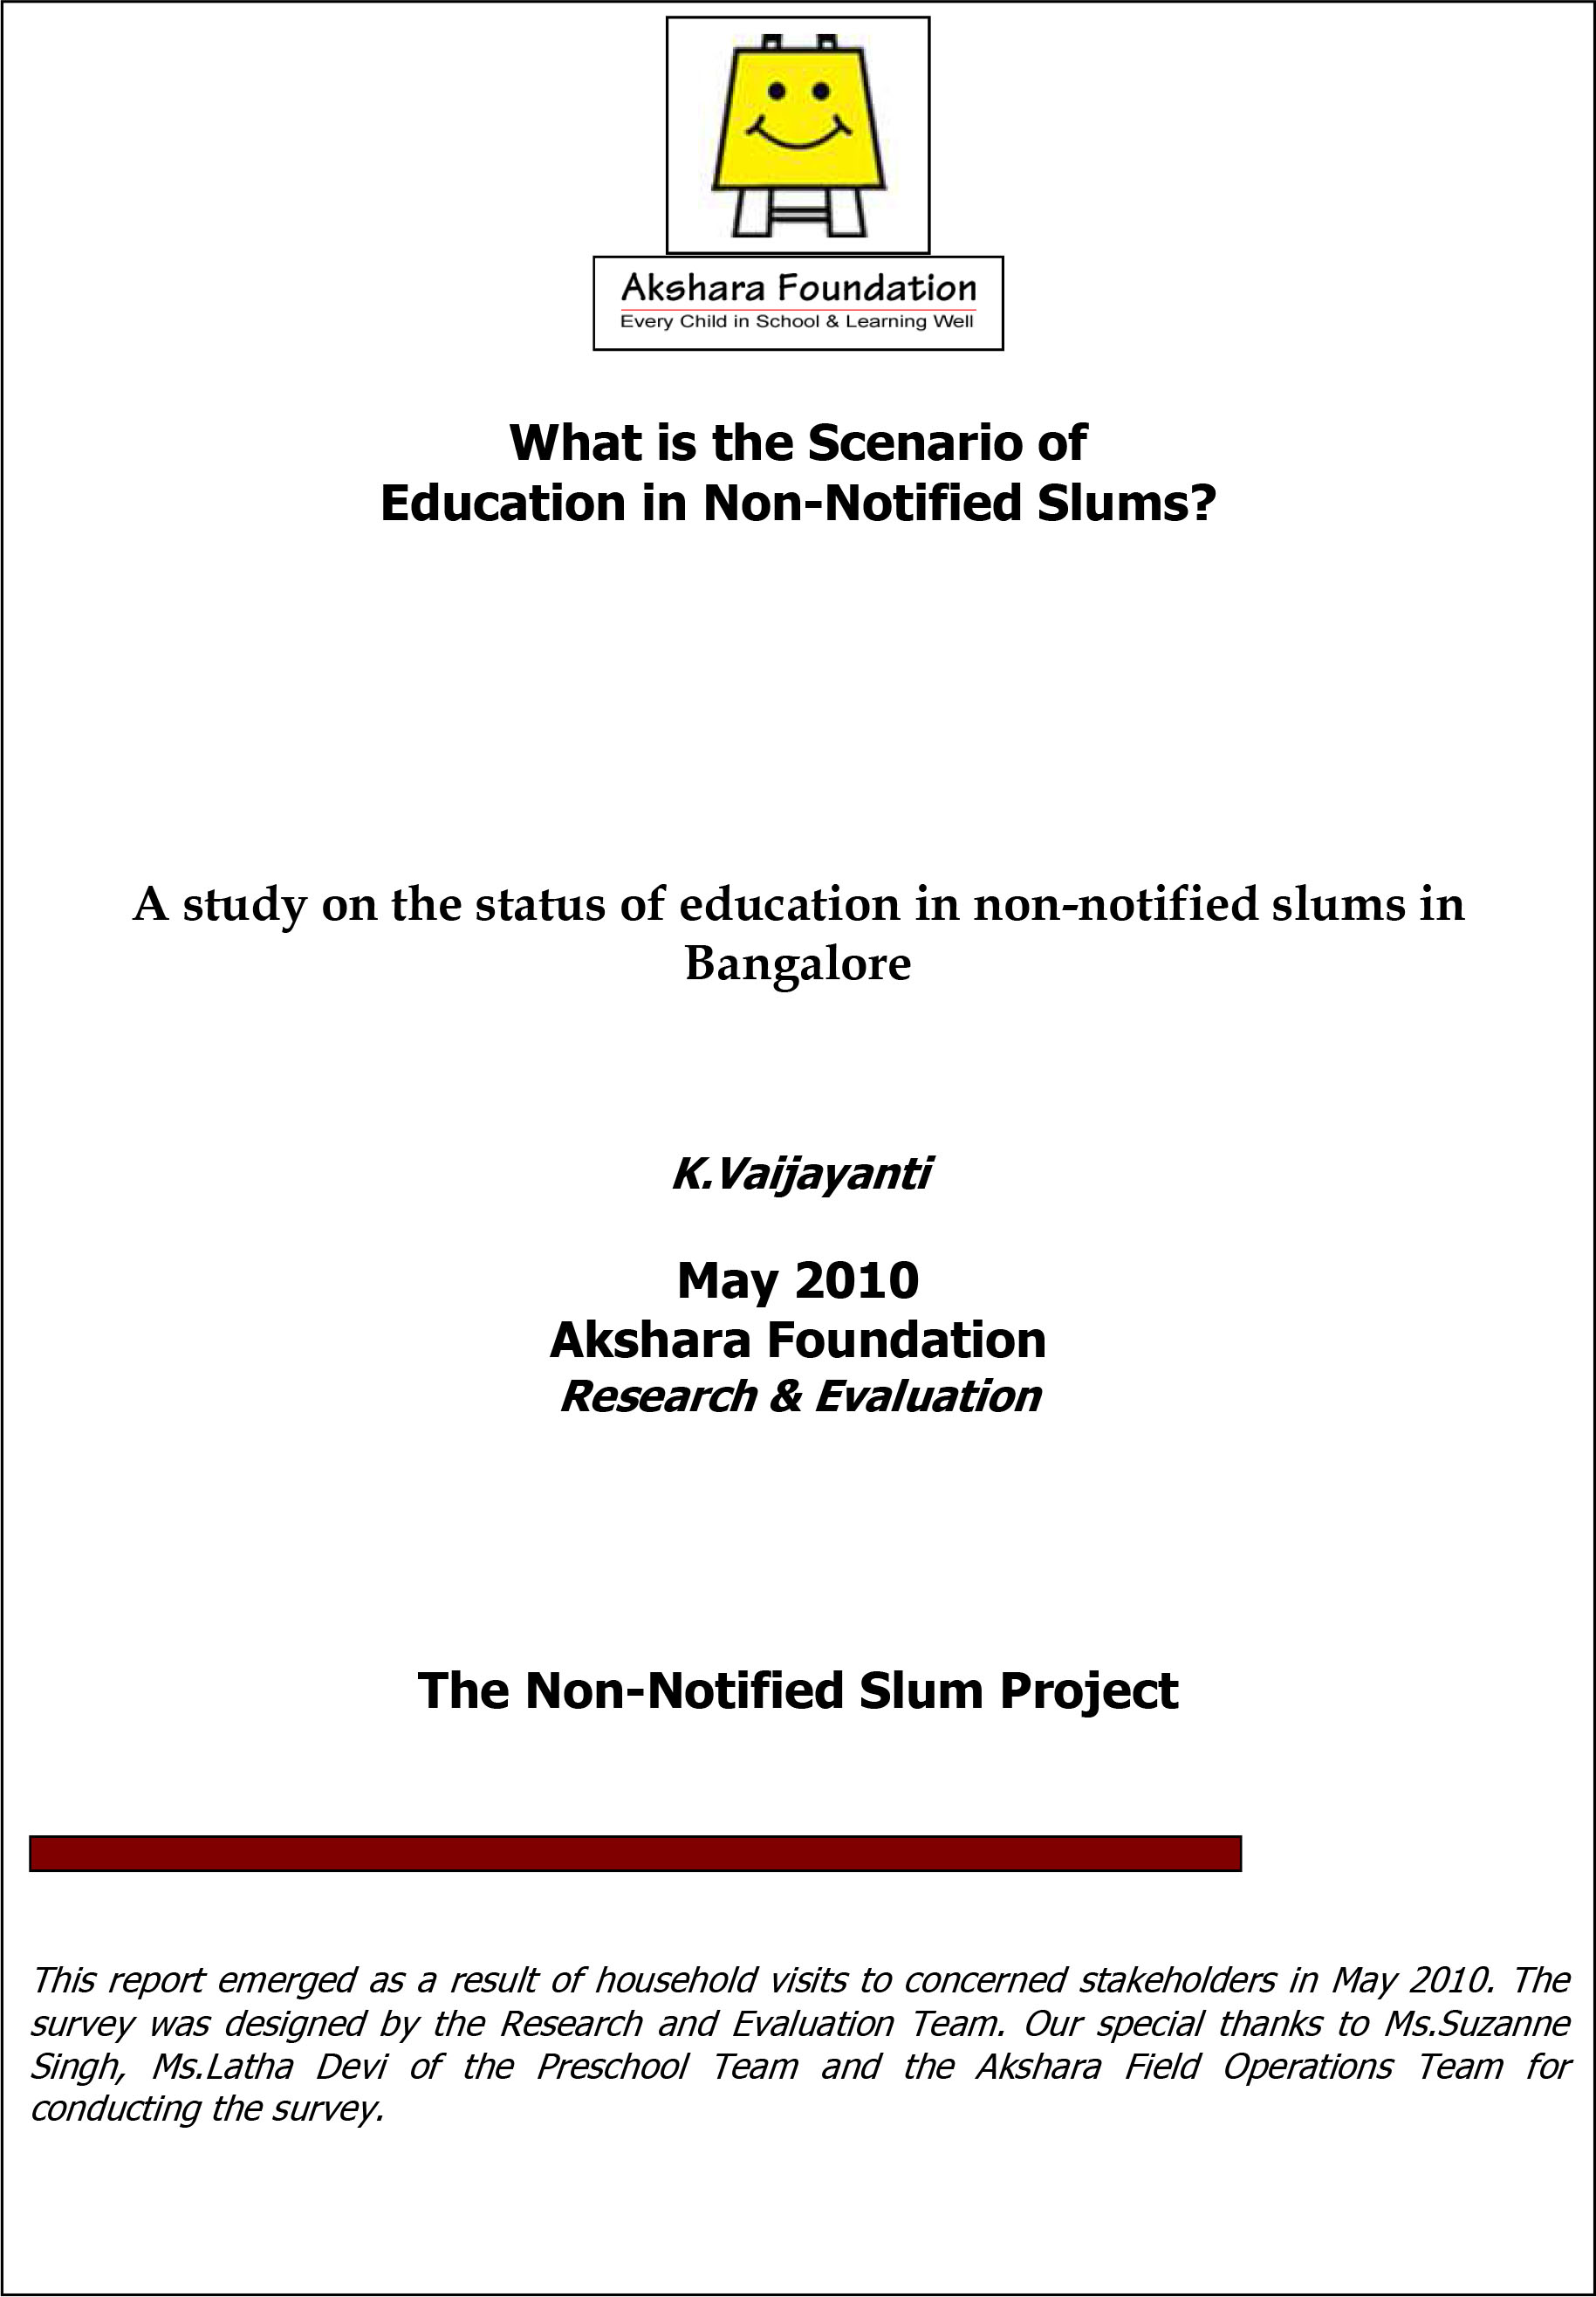 A study on the status of education in non-notified slums in Bangalore, 2010